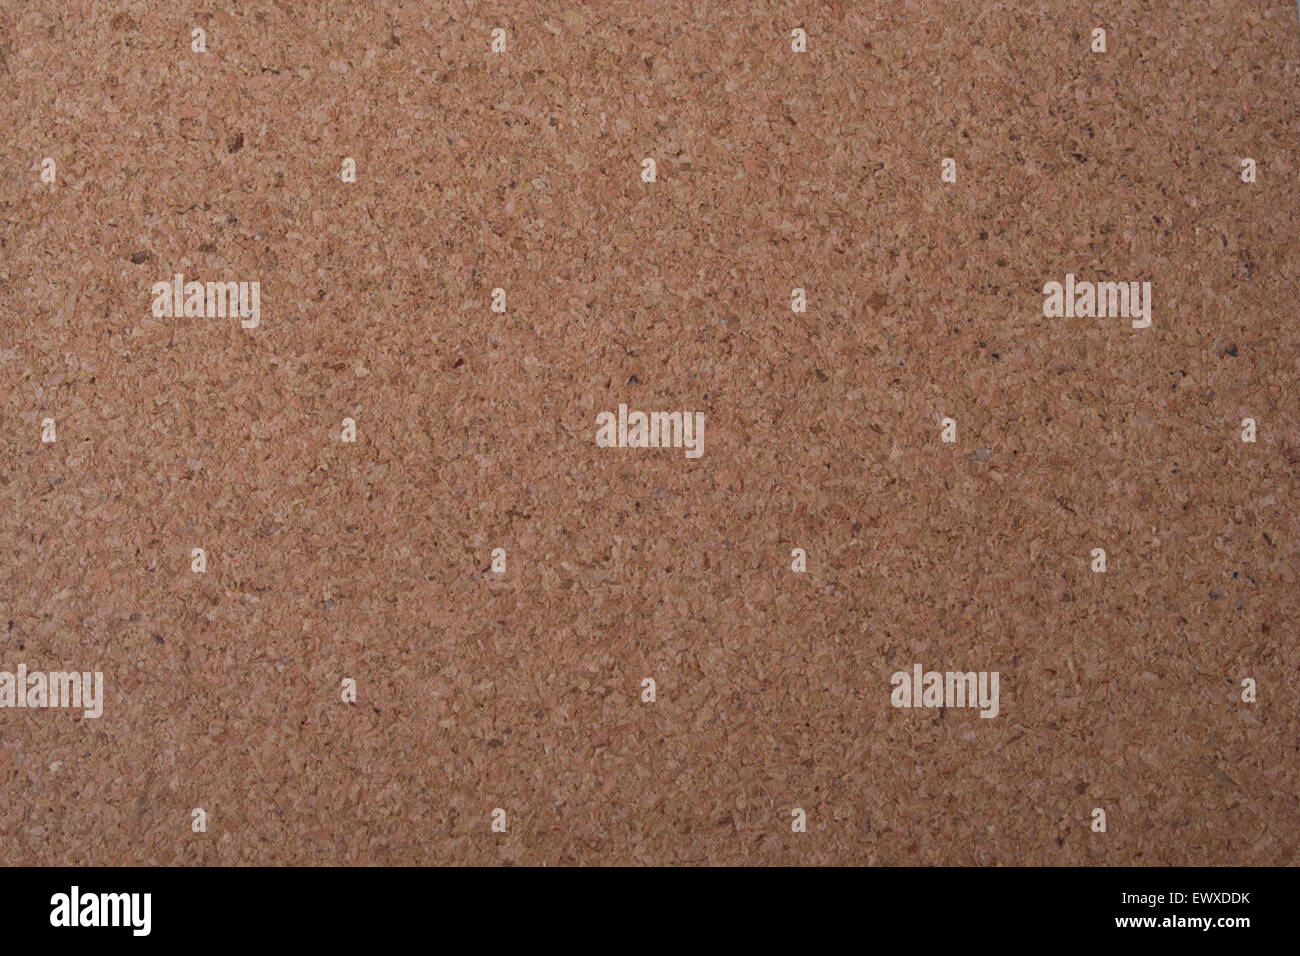 cortical background - Stock Image